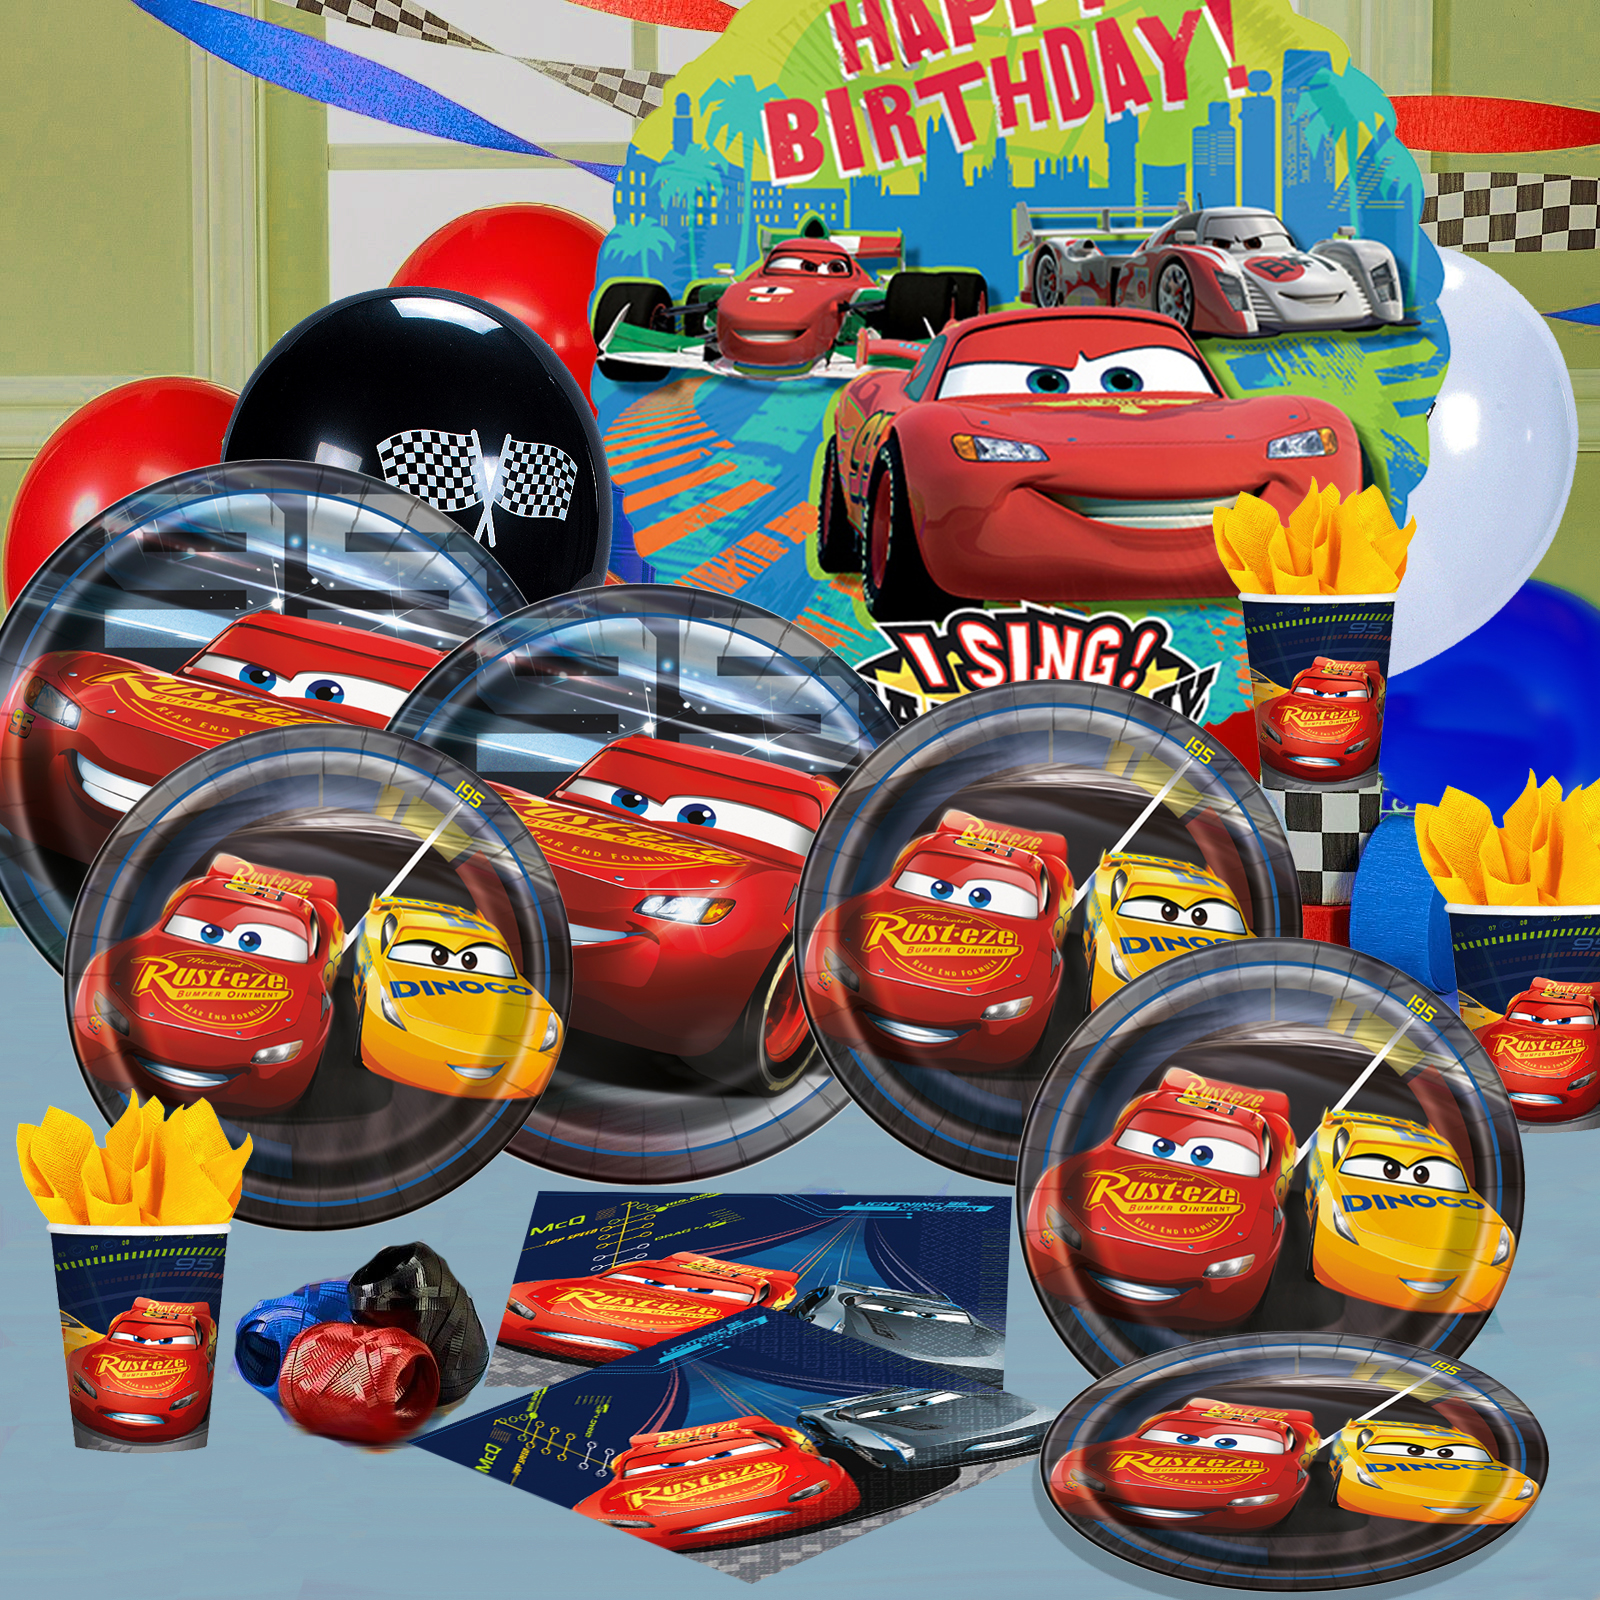 Disney Pixar Cars Birthday Decorations Tableware Create Your Own Party Pack Greeting Cards Party Supply Party Supplies